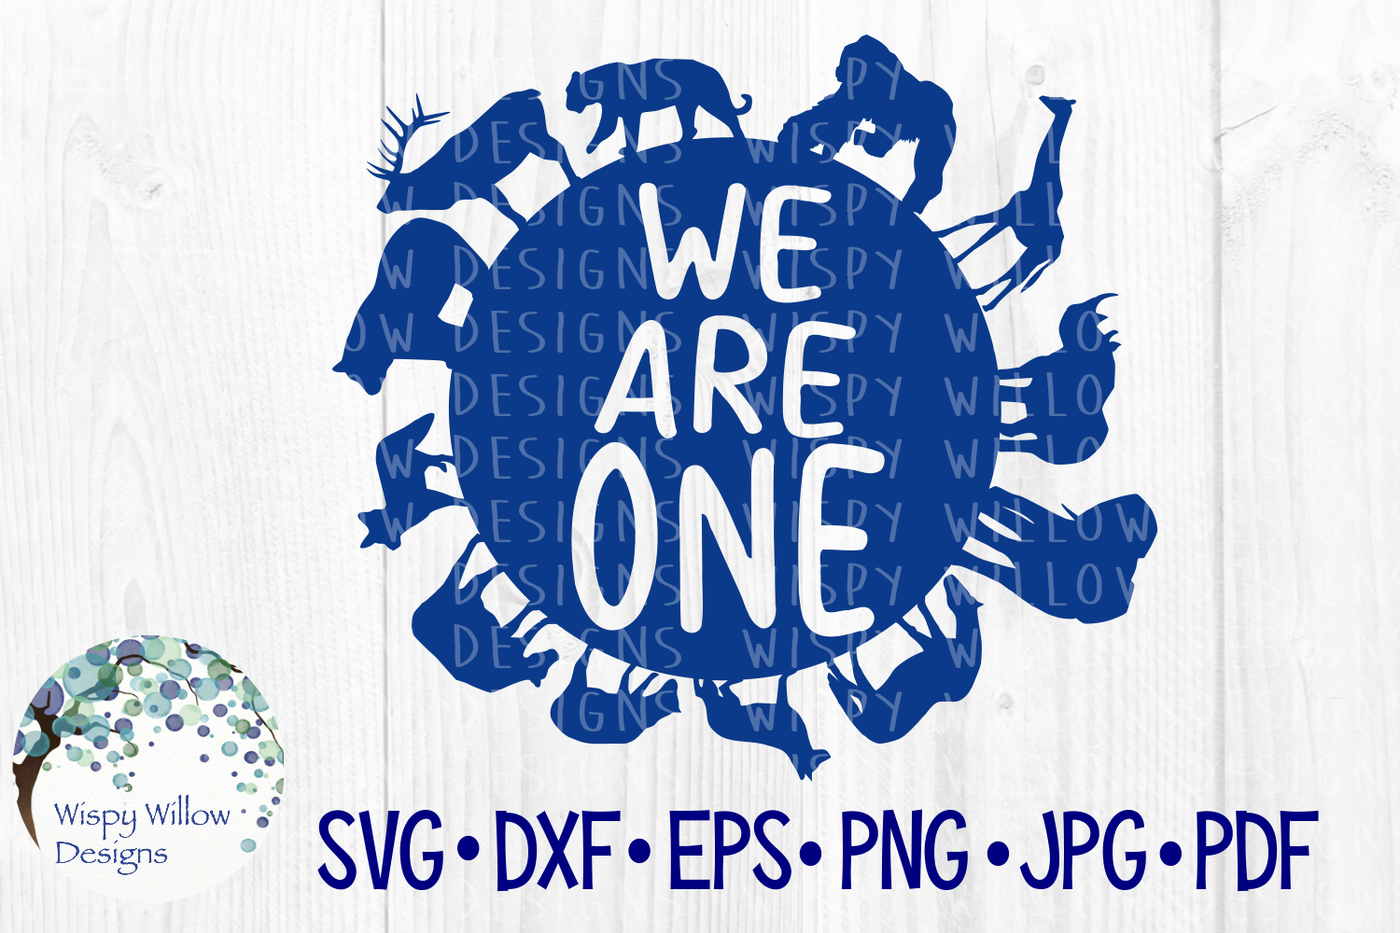 We Are One Earth Planet Animals Svg Dxf Eps Png Jpg Pdf By Wispy